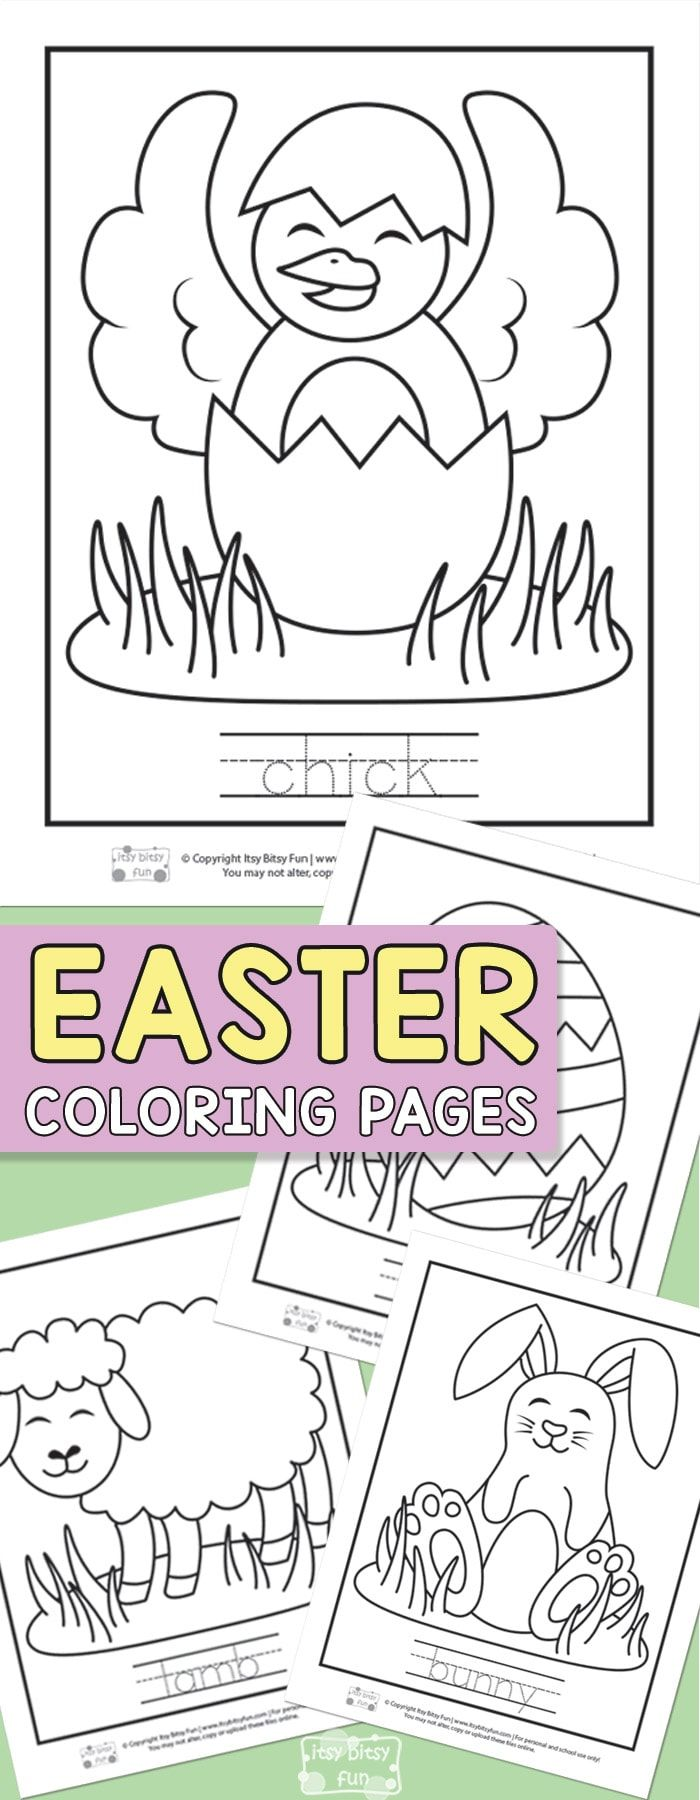 Easter coloring pages for kids kidus art and activity spring